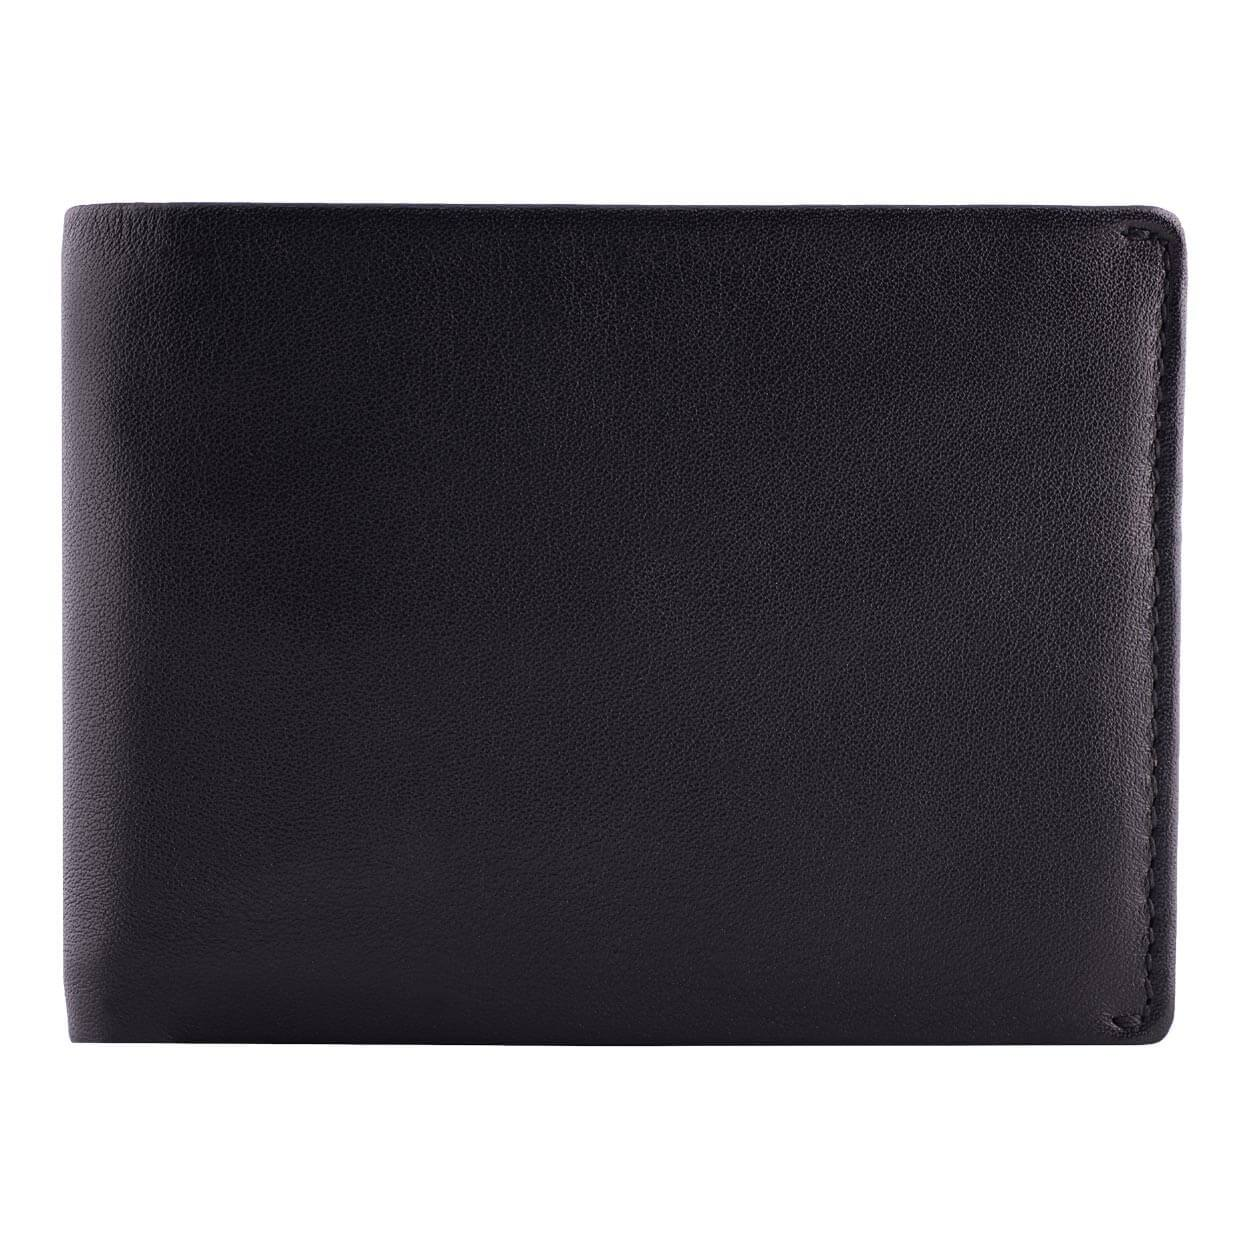 DiLoro Men's Leather Wallet Bifold 2 ID Windows RFID Protection -  Napa Black Front View